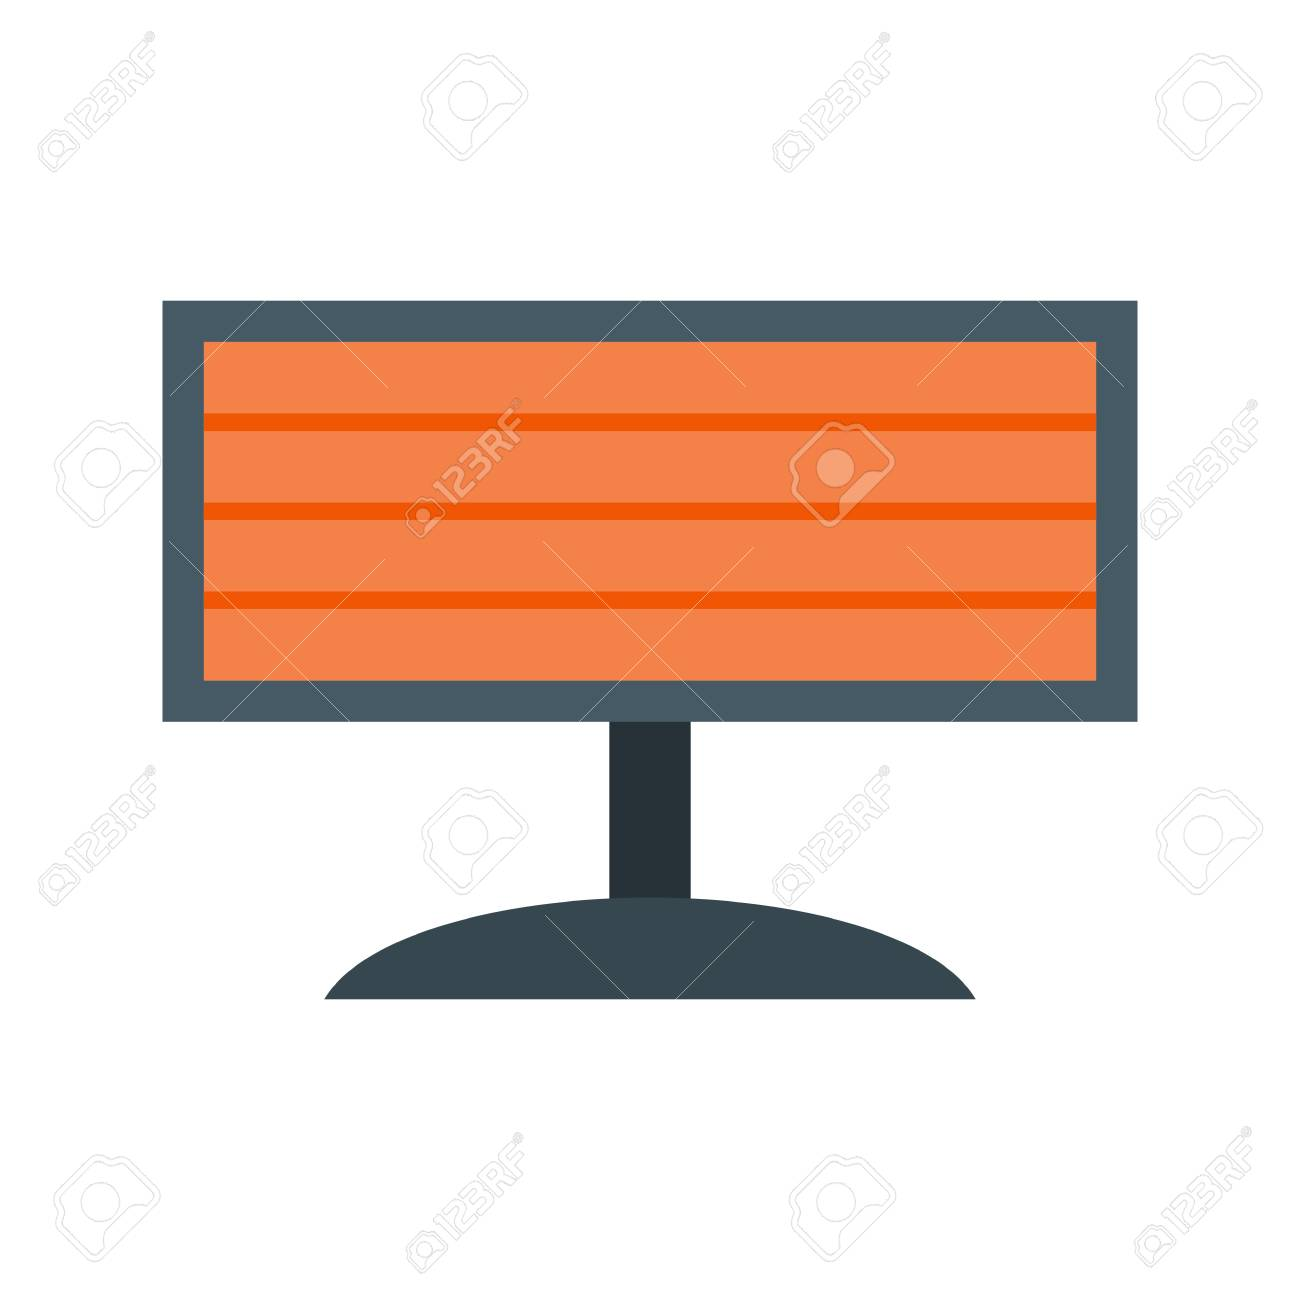 Infrared Heater Icon Royalty Free Cliparts Vectors And Stock